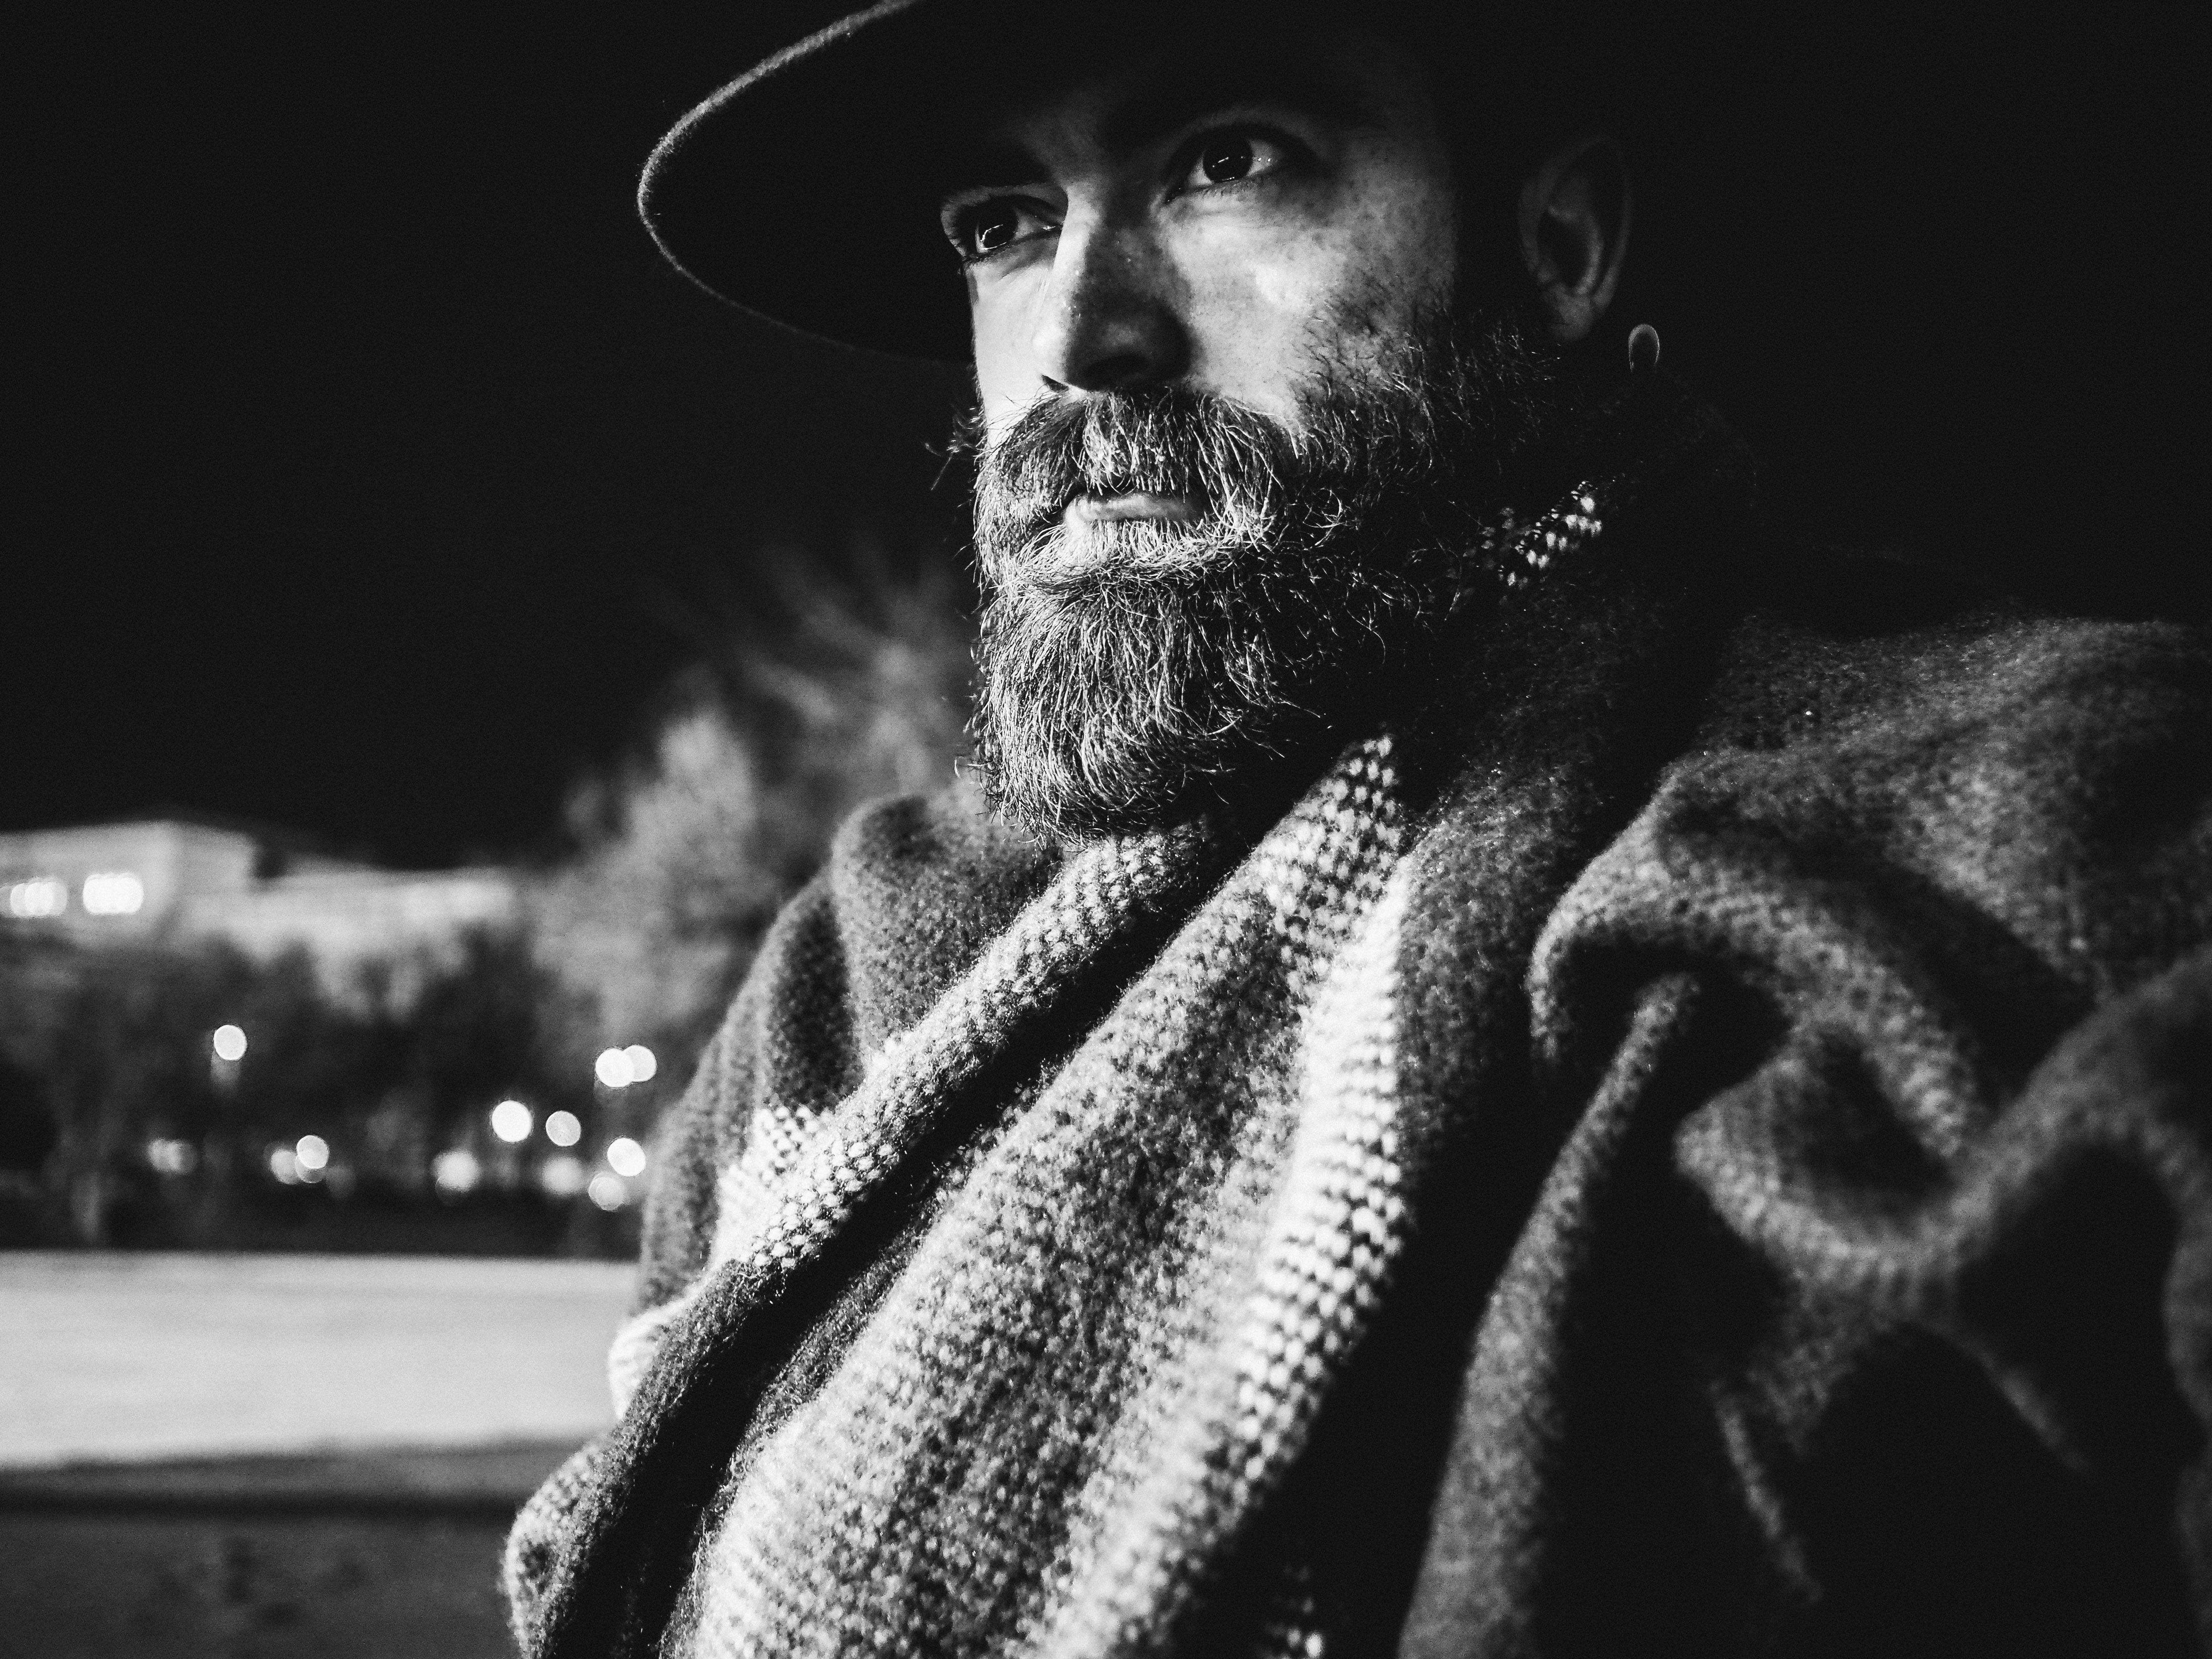 Black and white close up shot of bearded man wearing hat and poncho in budapest